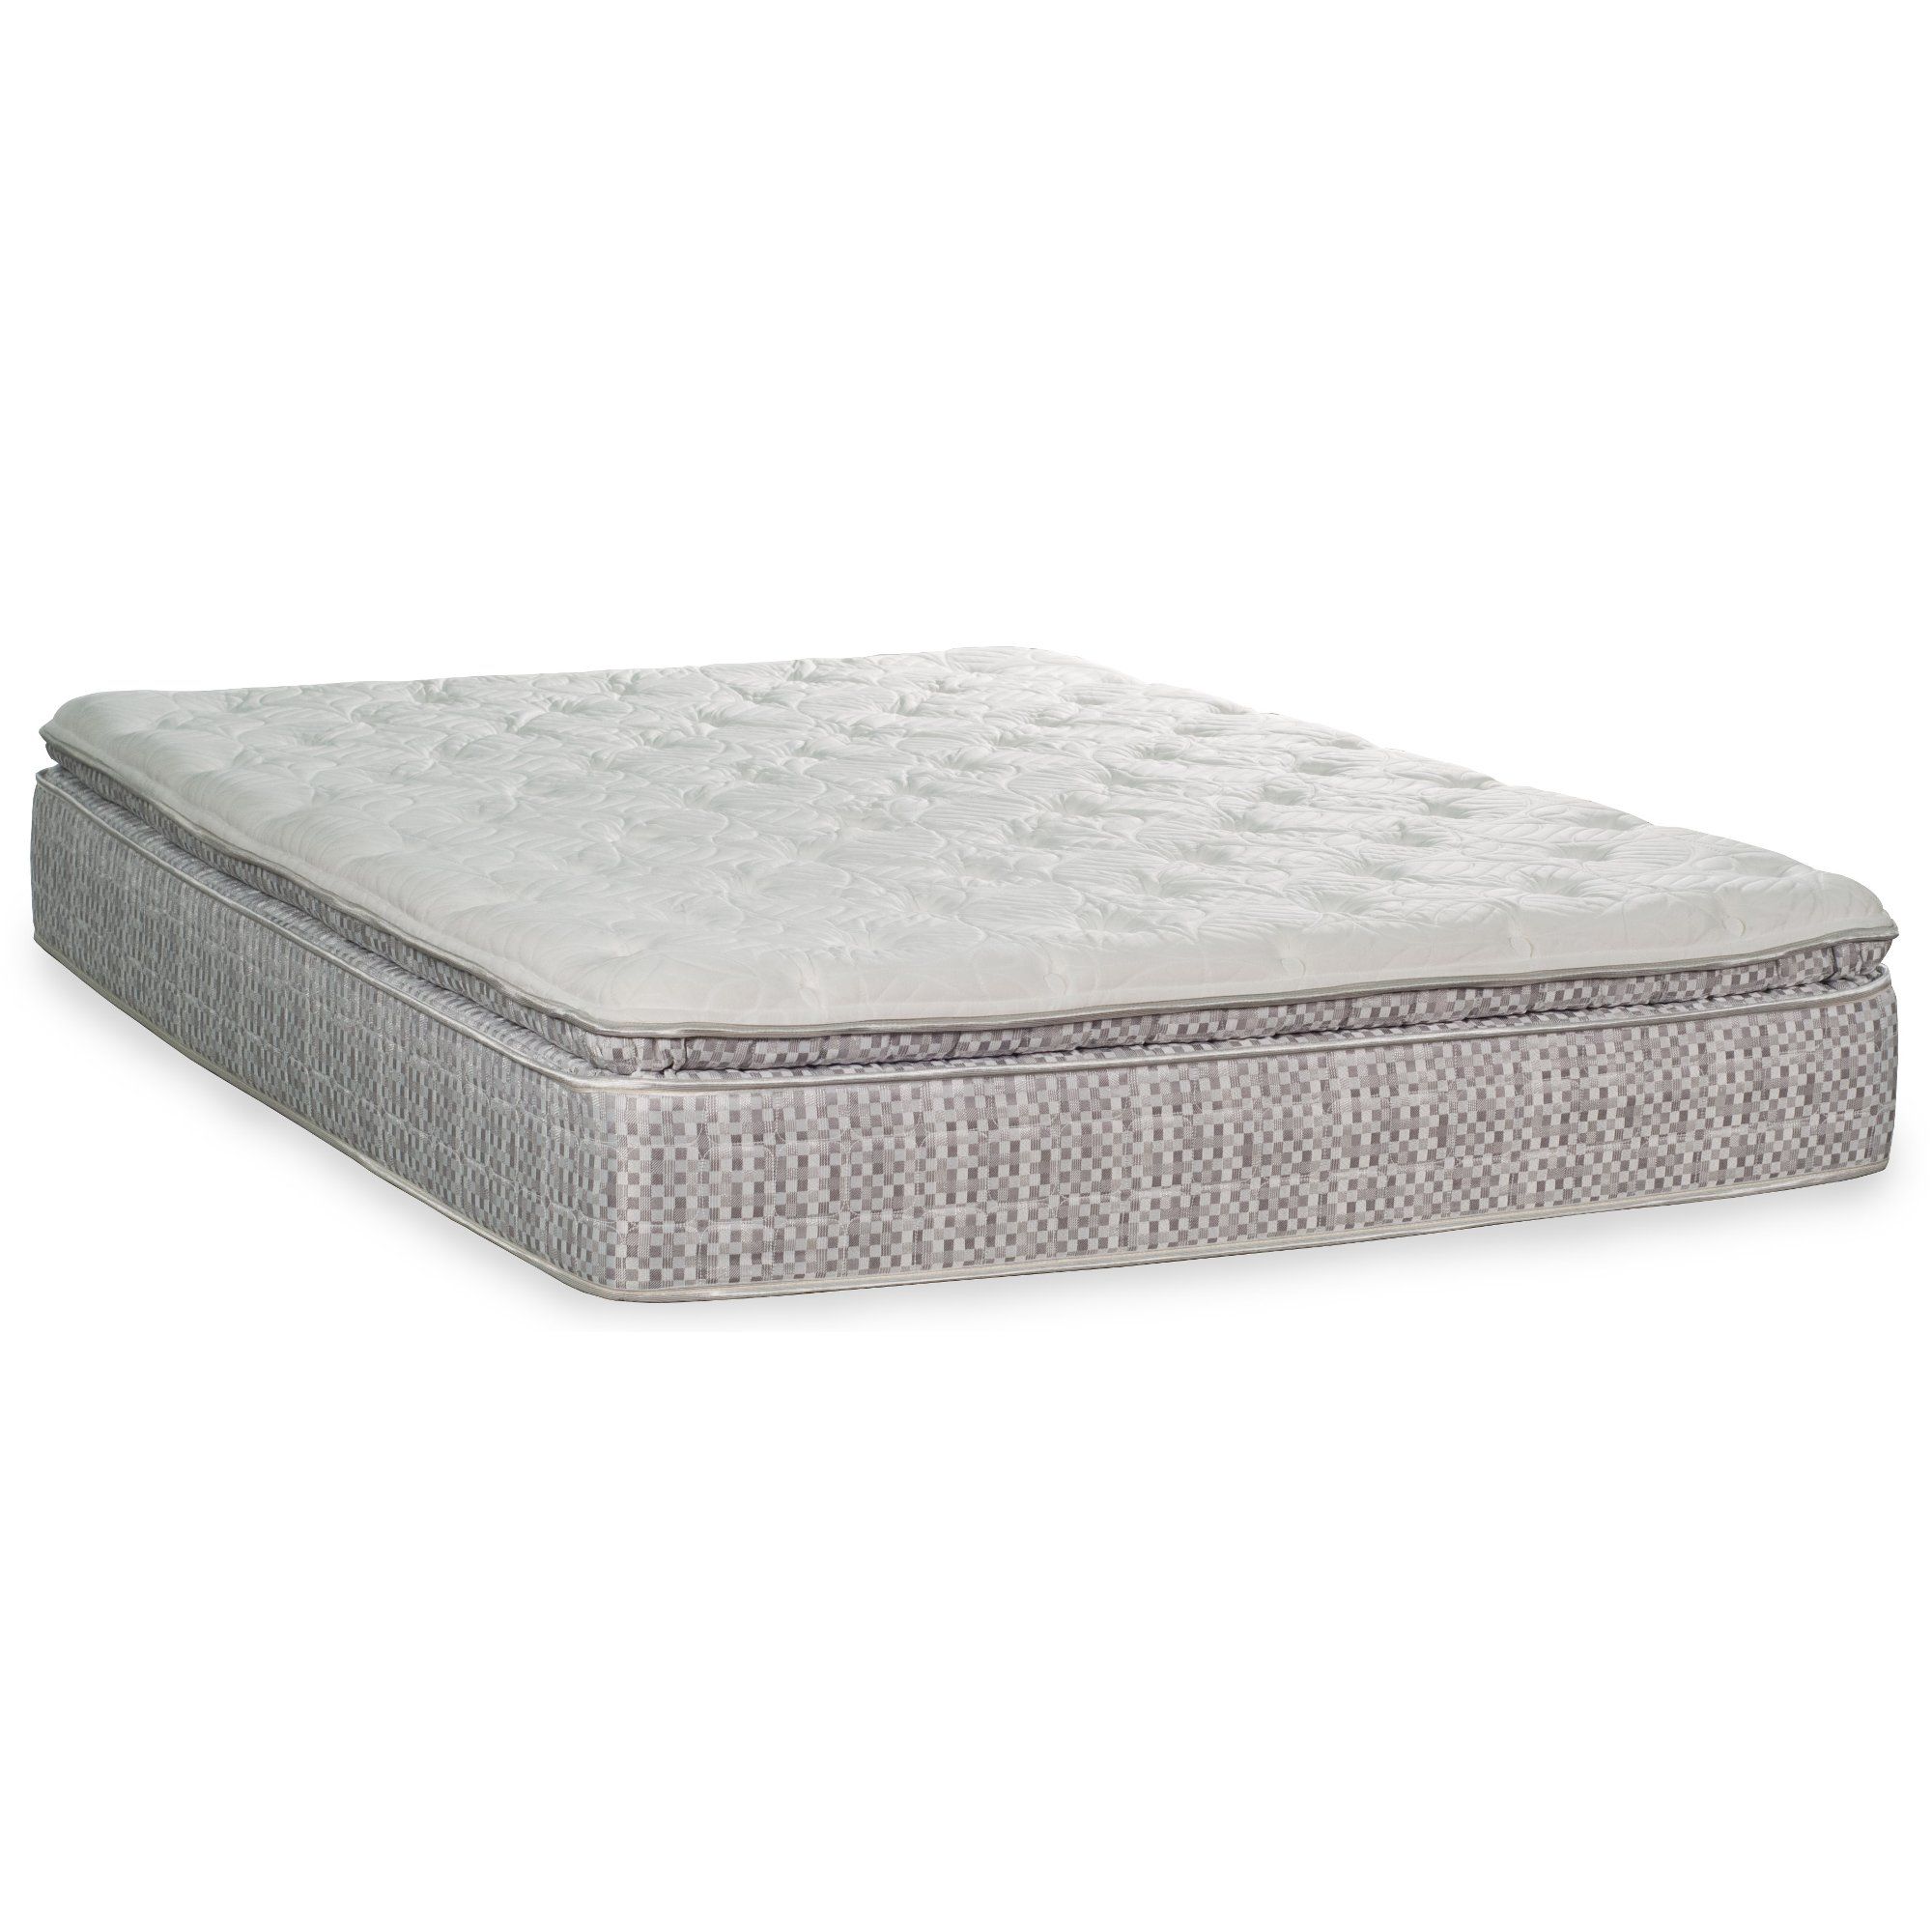 Queen mattresses and queen size mattress sets